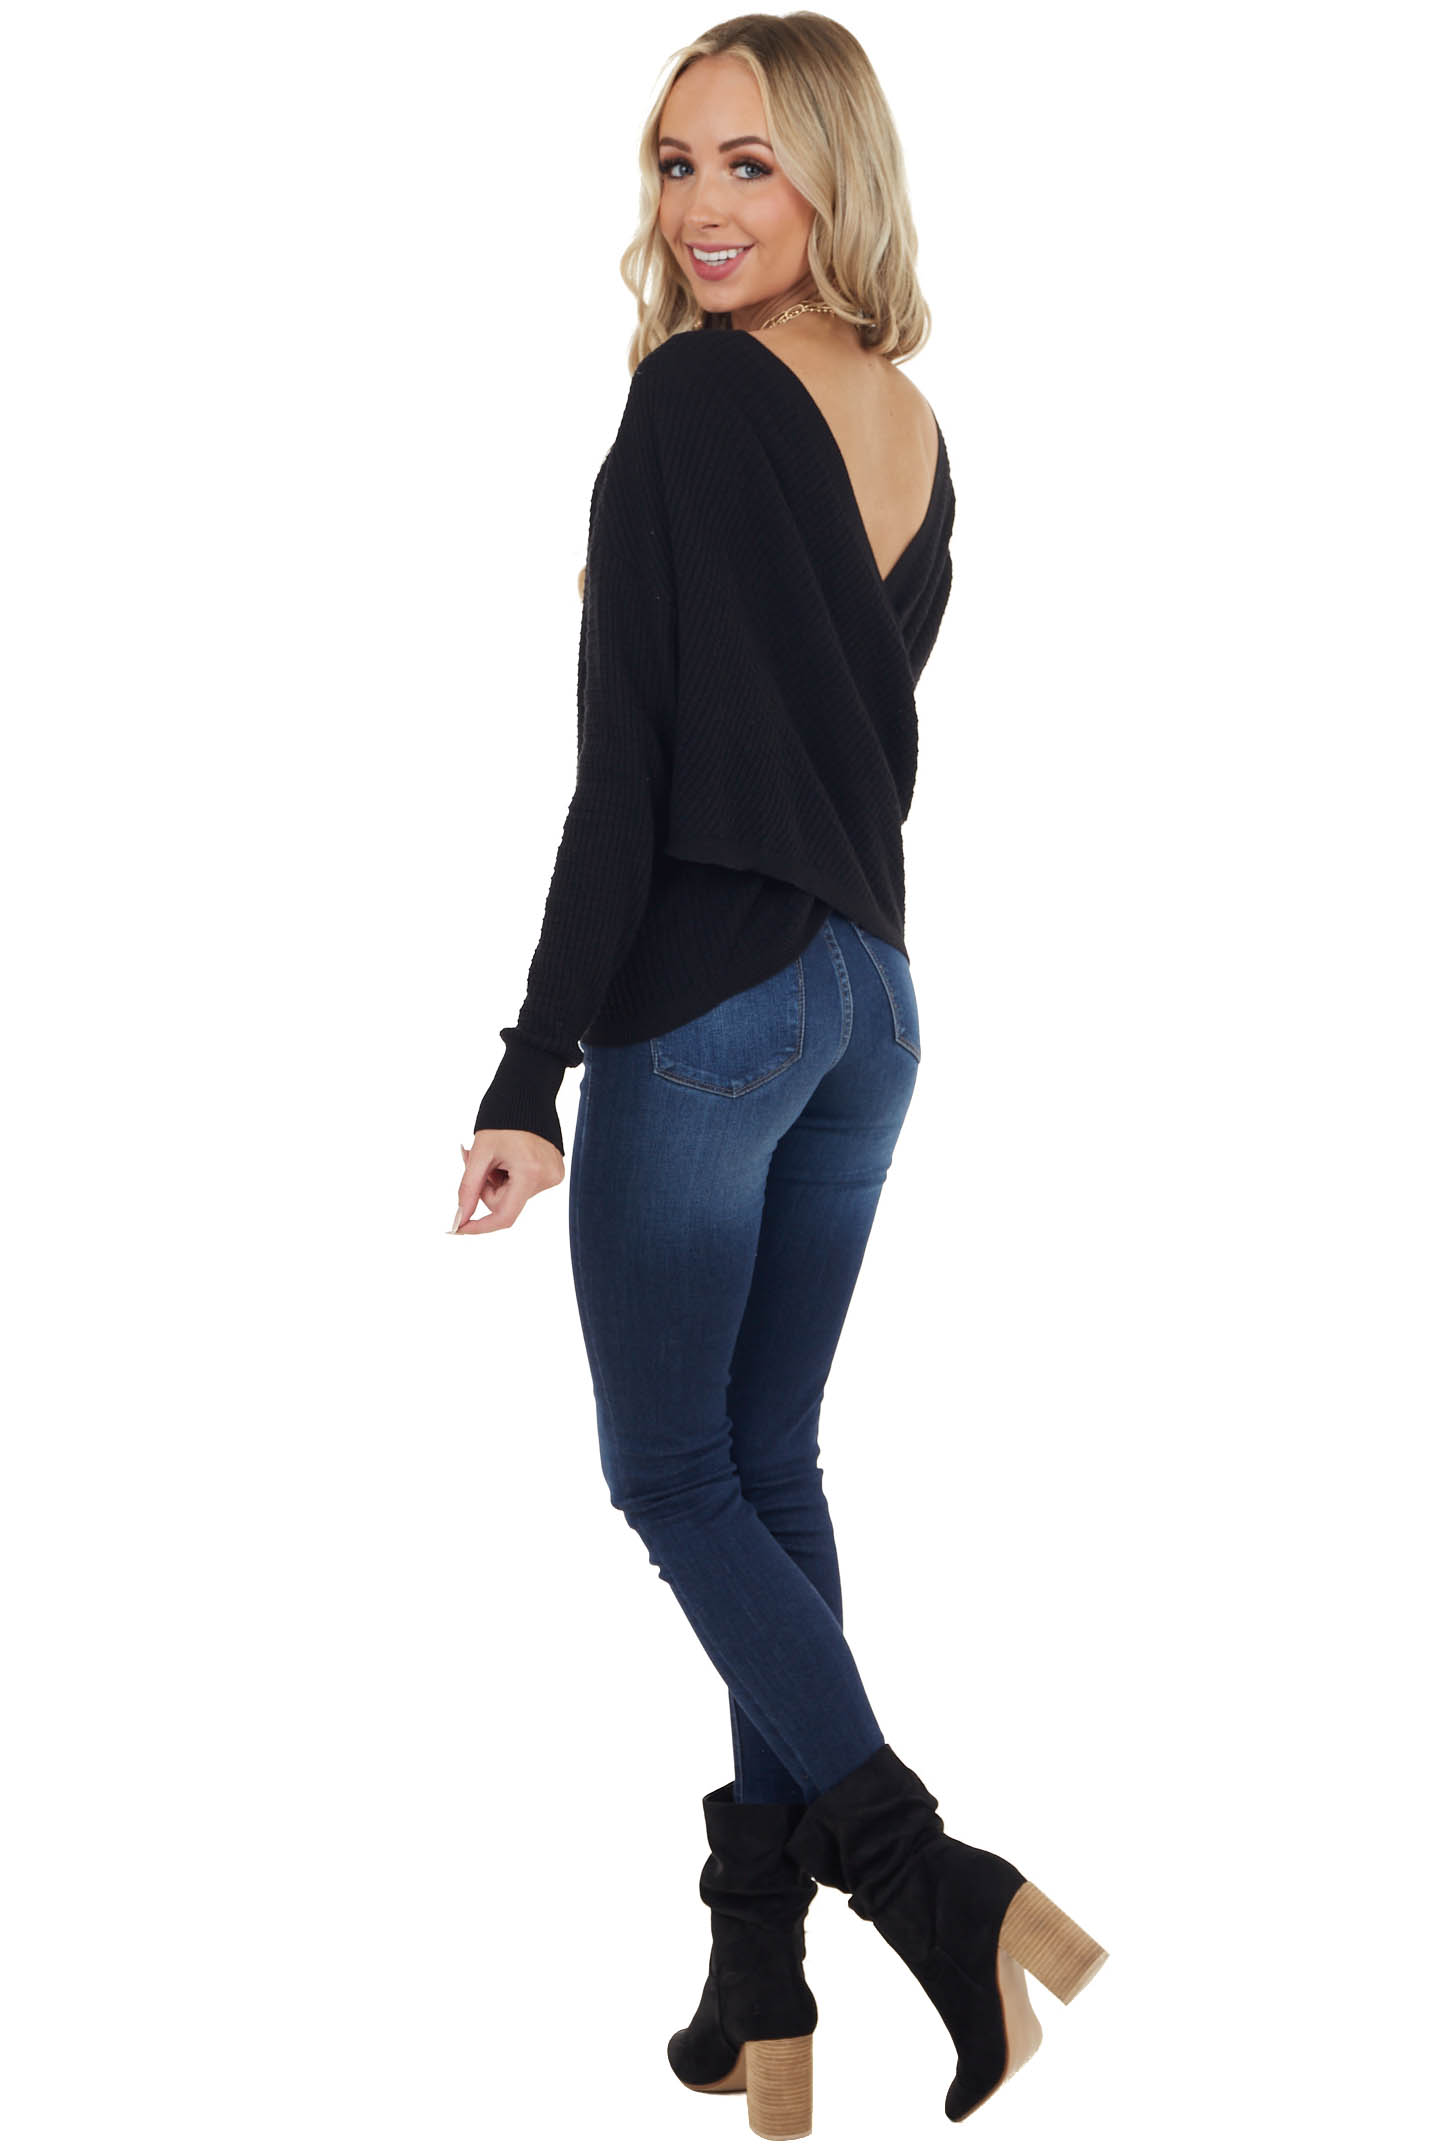 Black Textured Knit Surplice Back Top with Long Sleeves